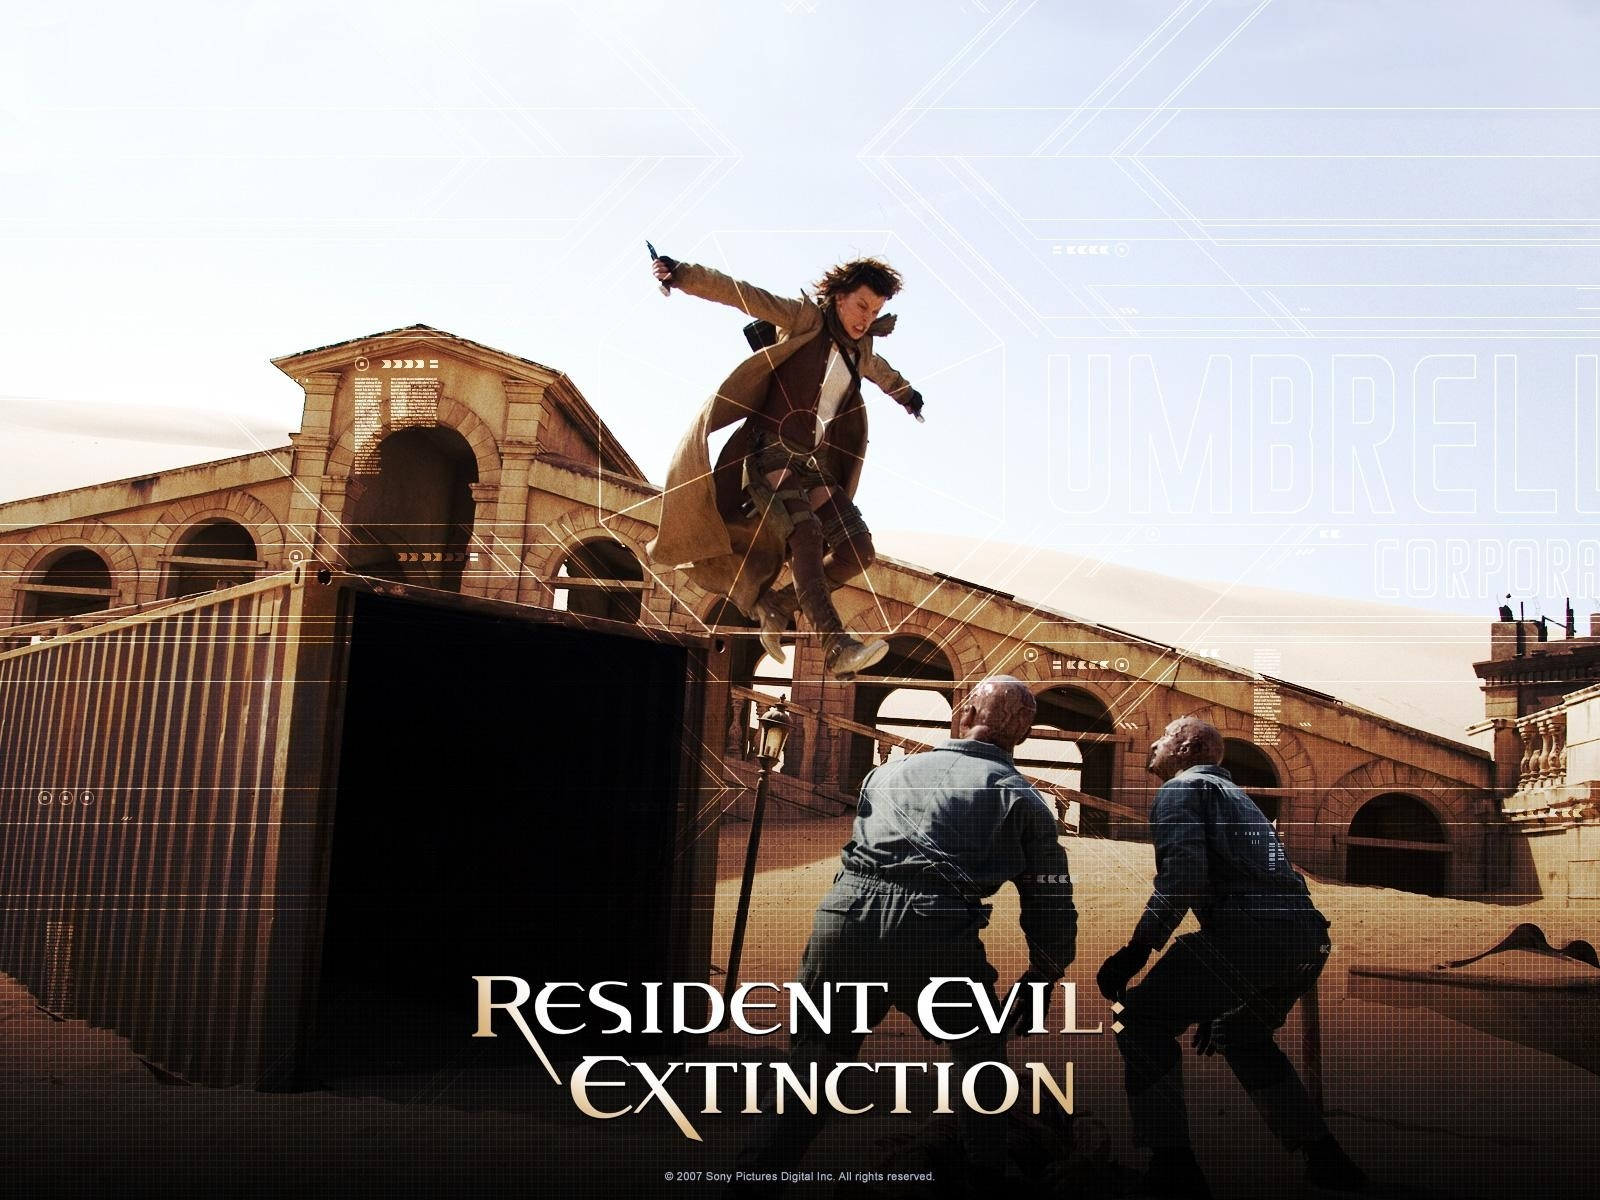 Un wallpaper del film Resident Evil: Extinction